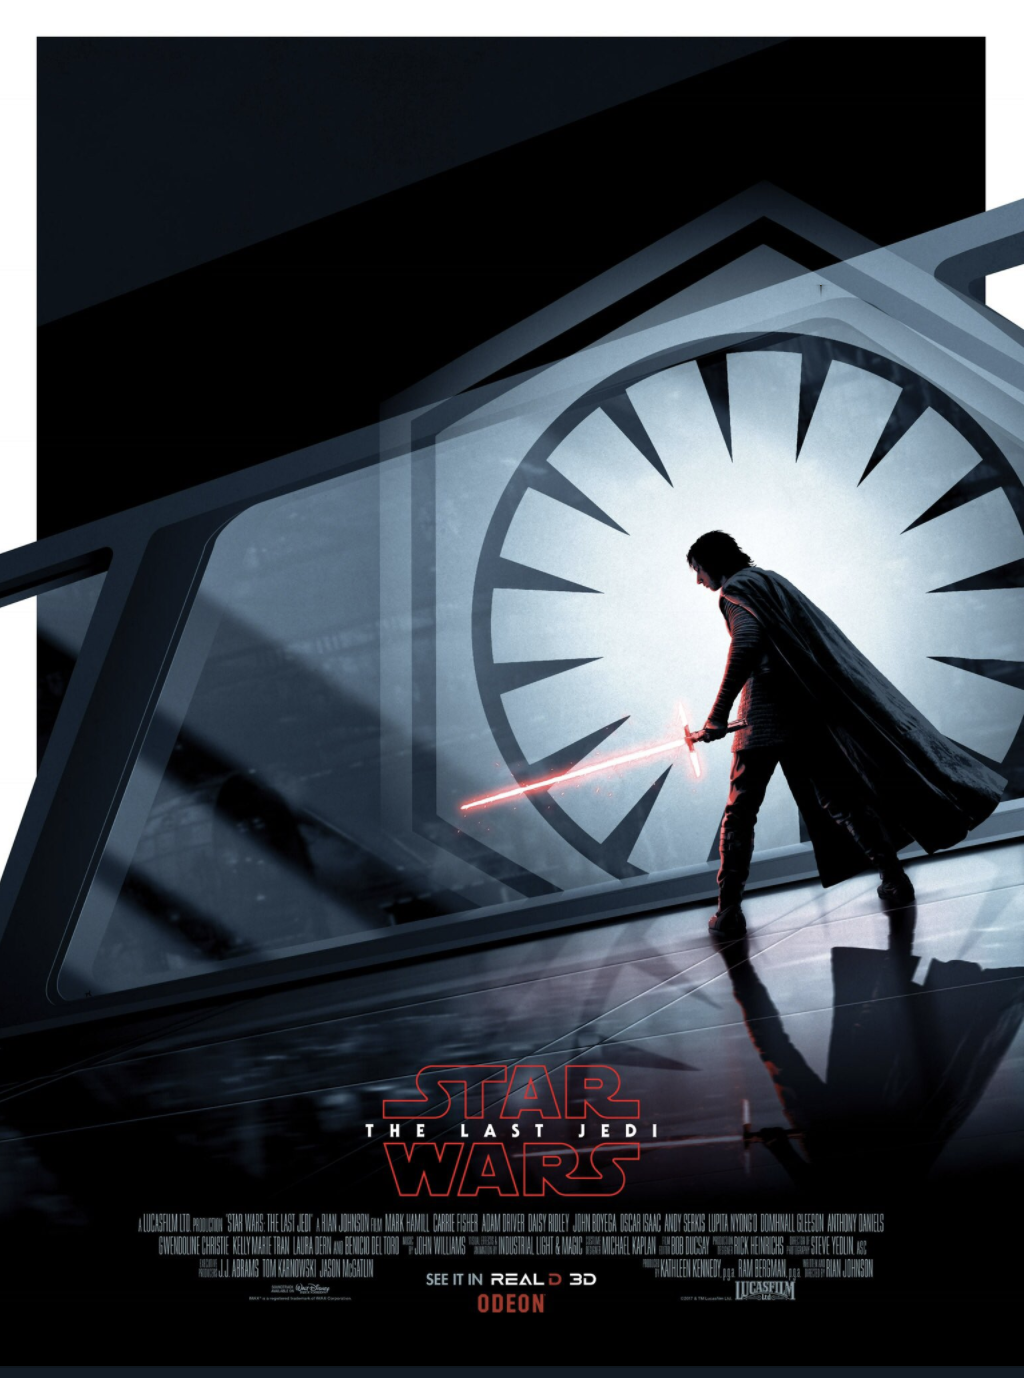 Early Buzz For Star Wars The Last Jedi Says It S A Surprising Funny And Jaw Dropping Film Plus New Poster Art Geektyrant Star Wars Poster New Star Wars Star Wars Memes